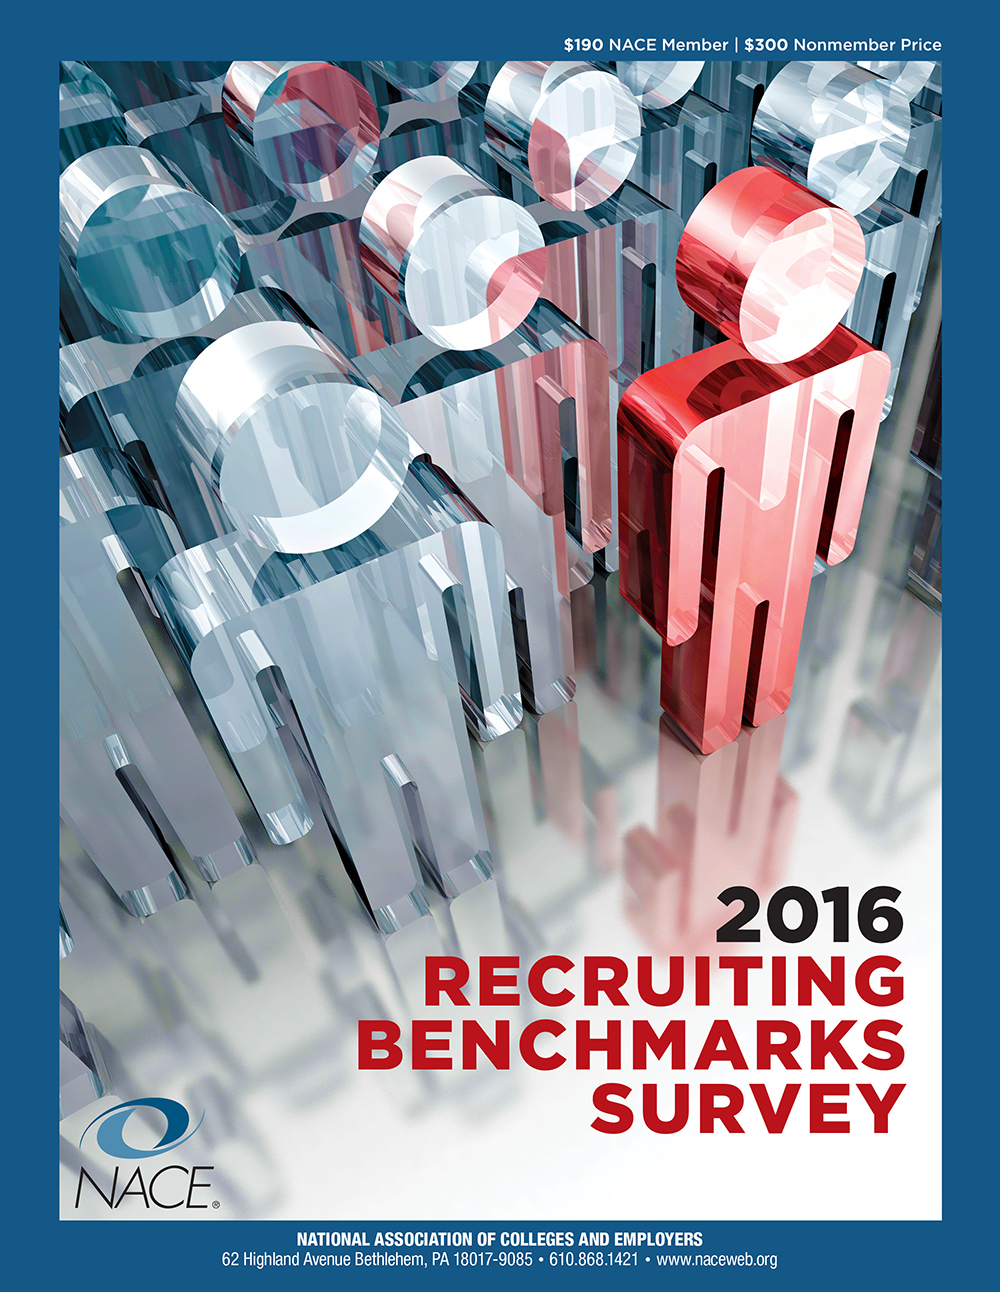 Recruiting Benchmarks Survey Report 2016